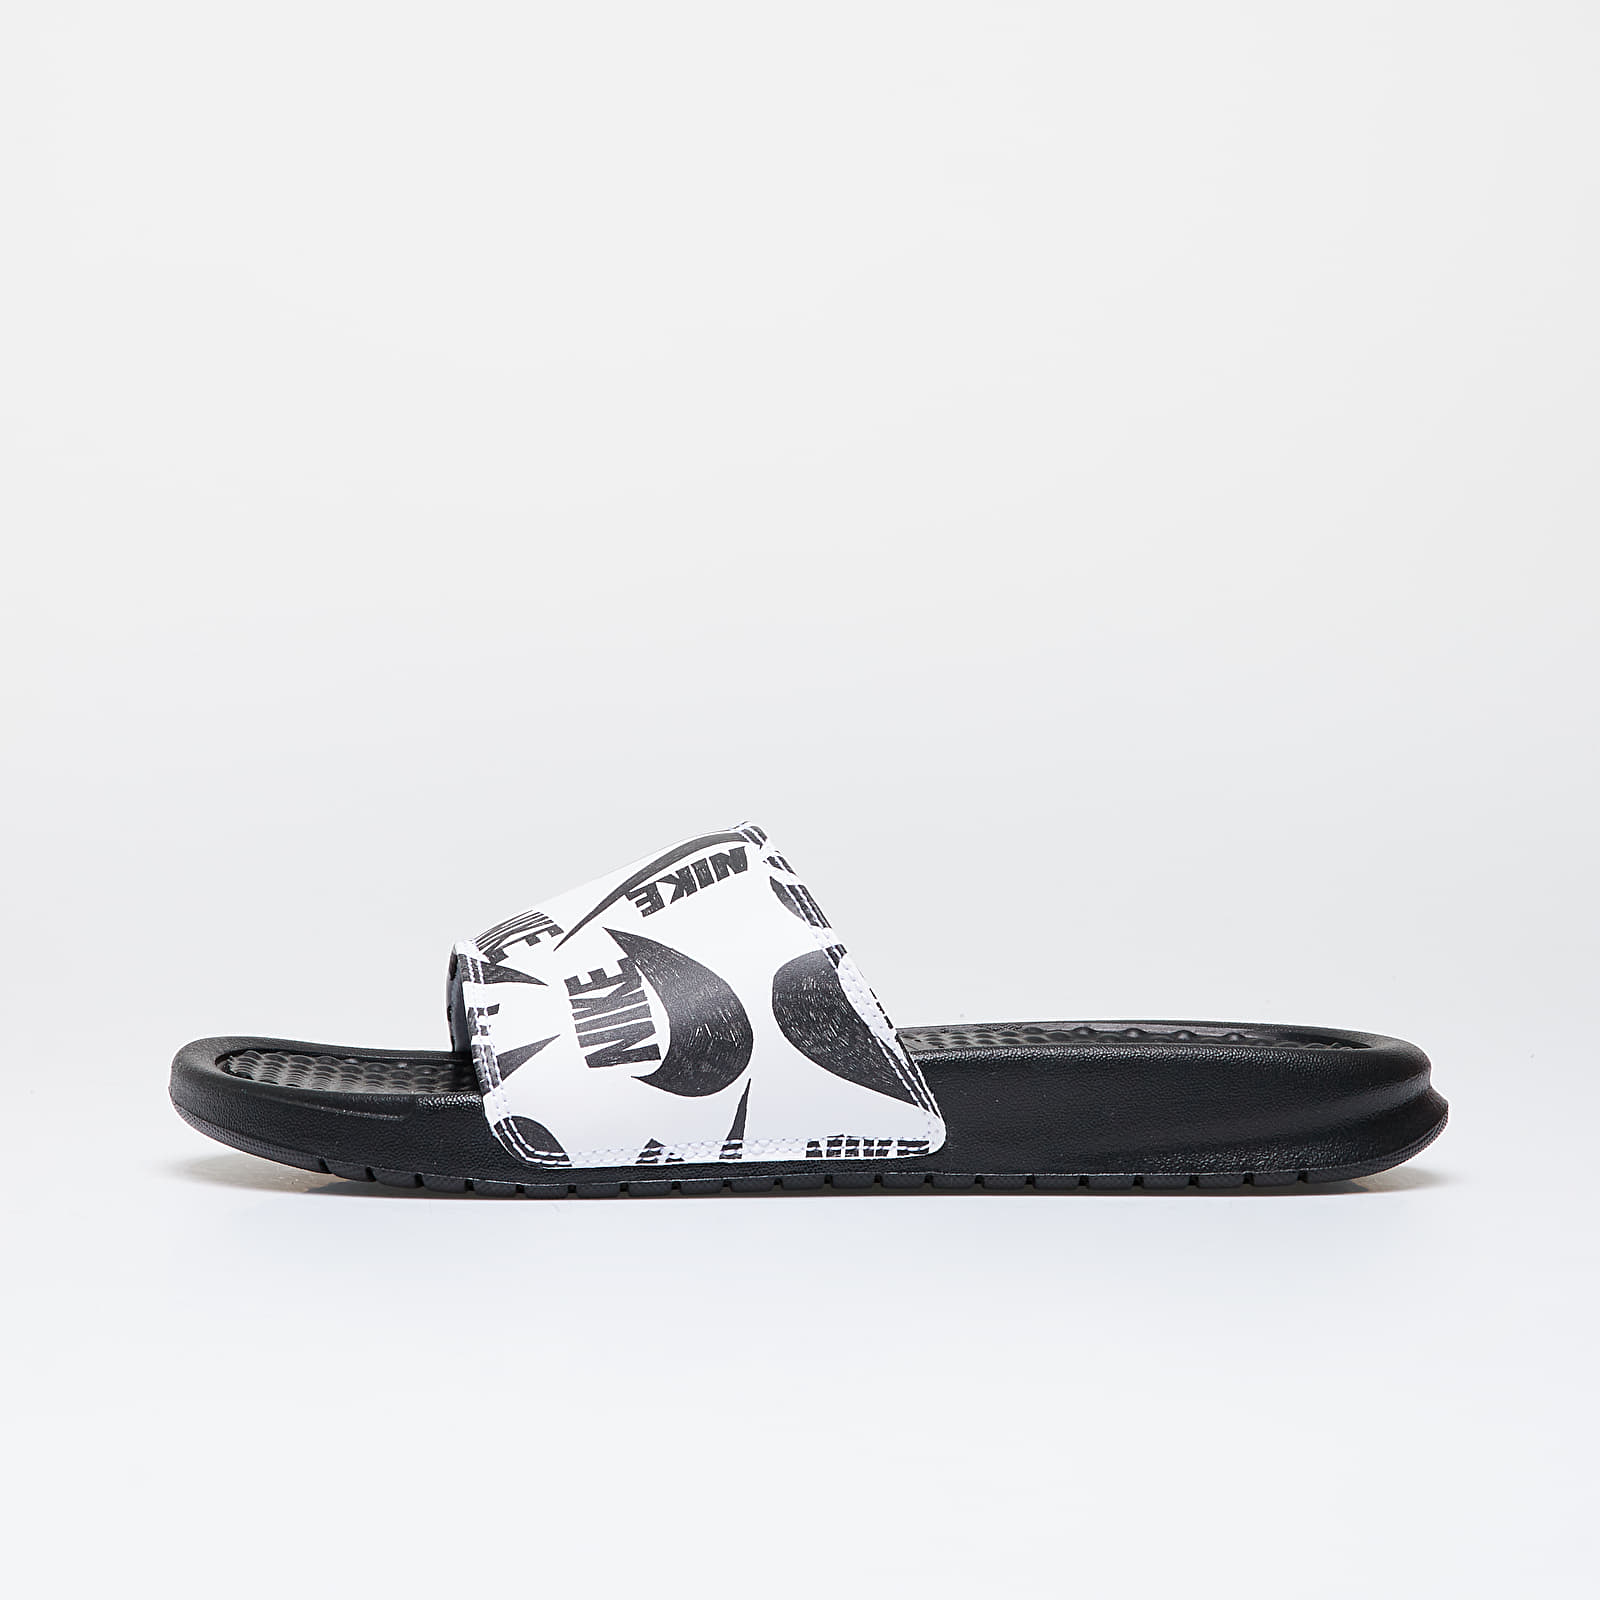 Women's shoes Nike Wmns Benassi Jdi Print Black/ Black-White